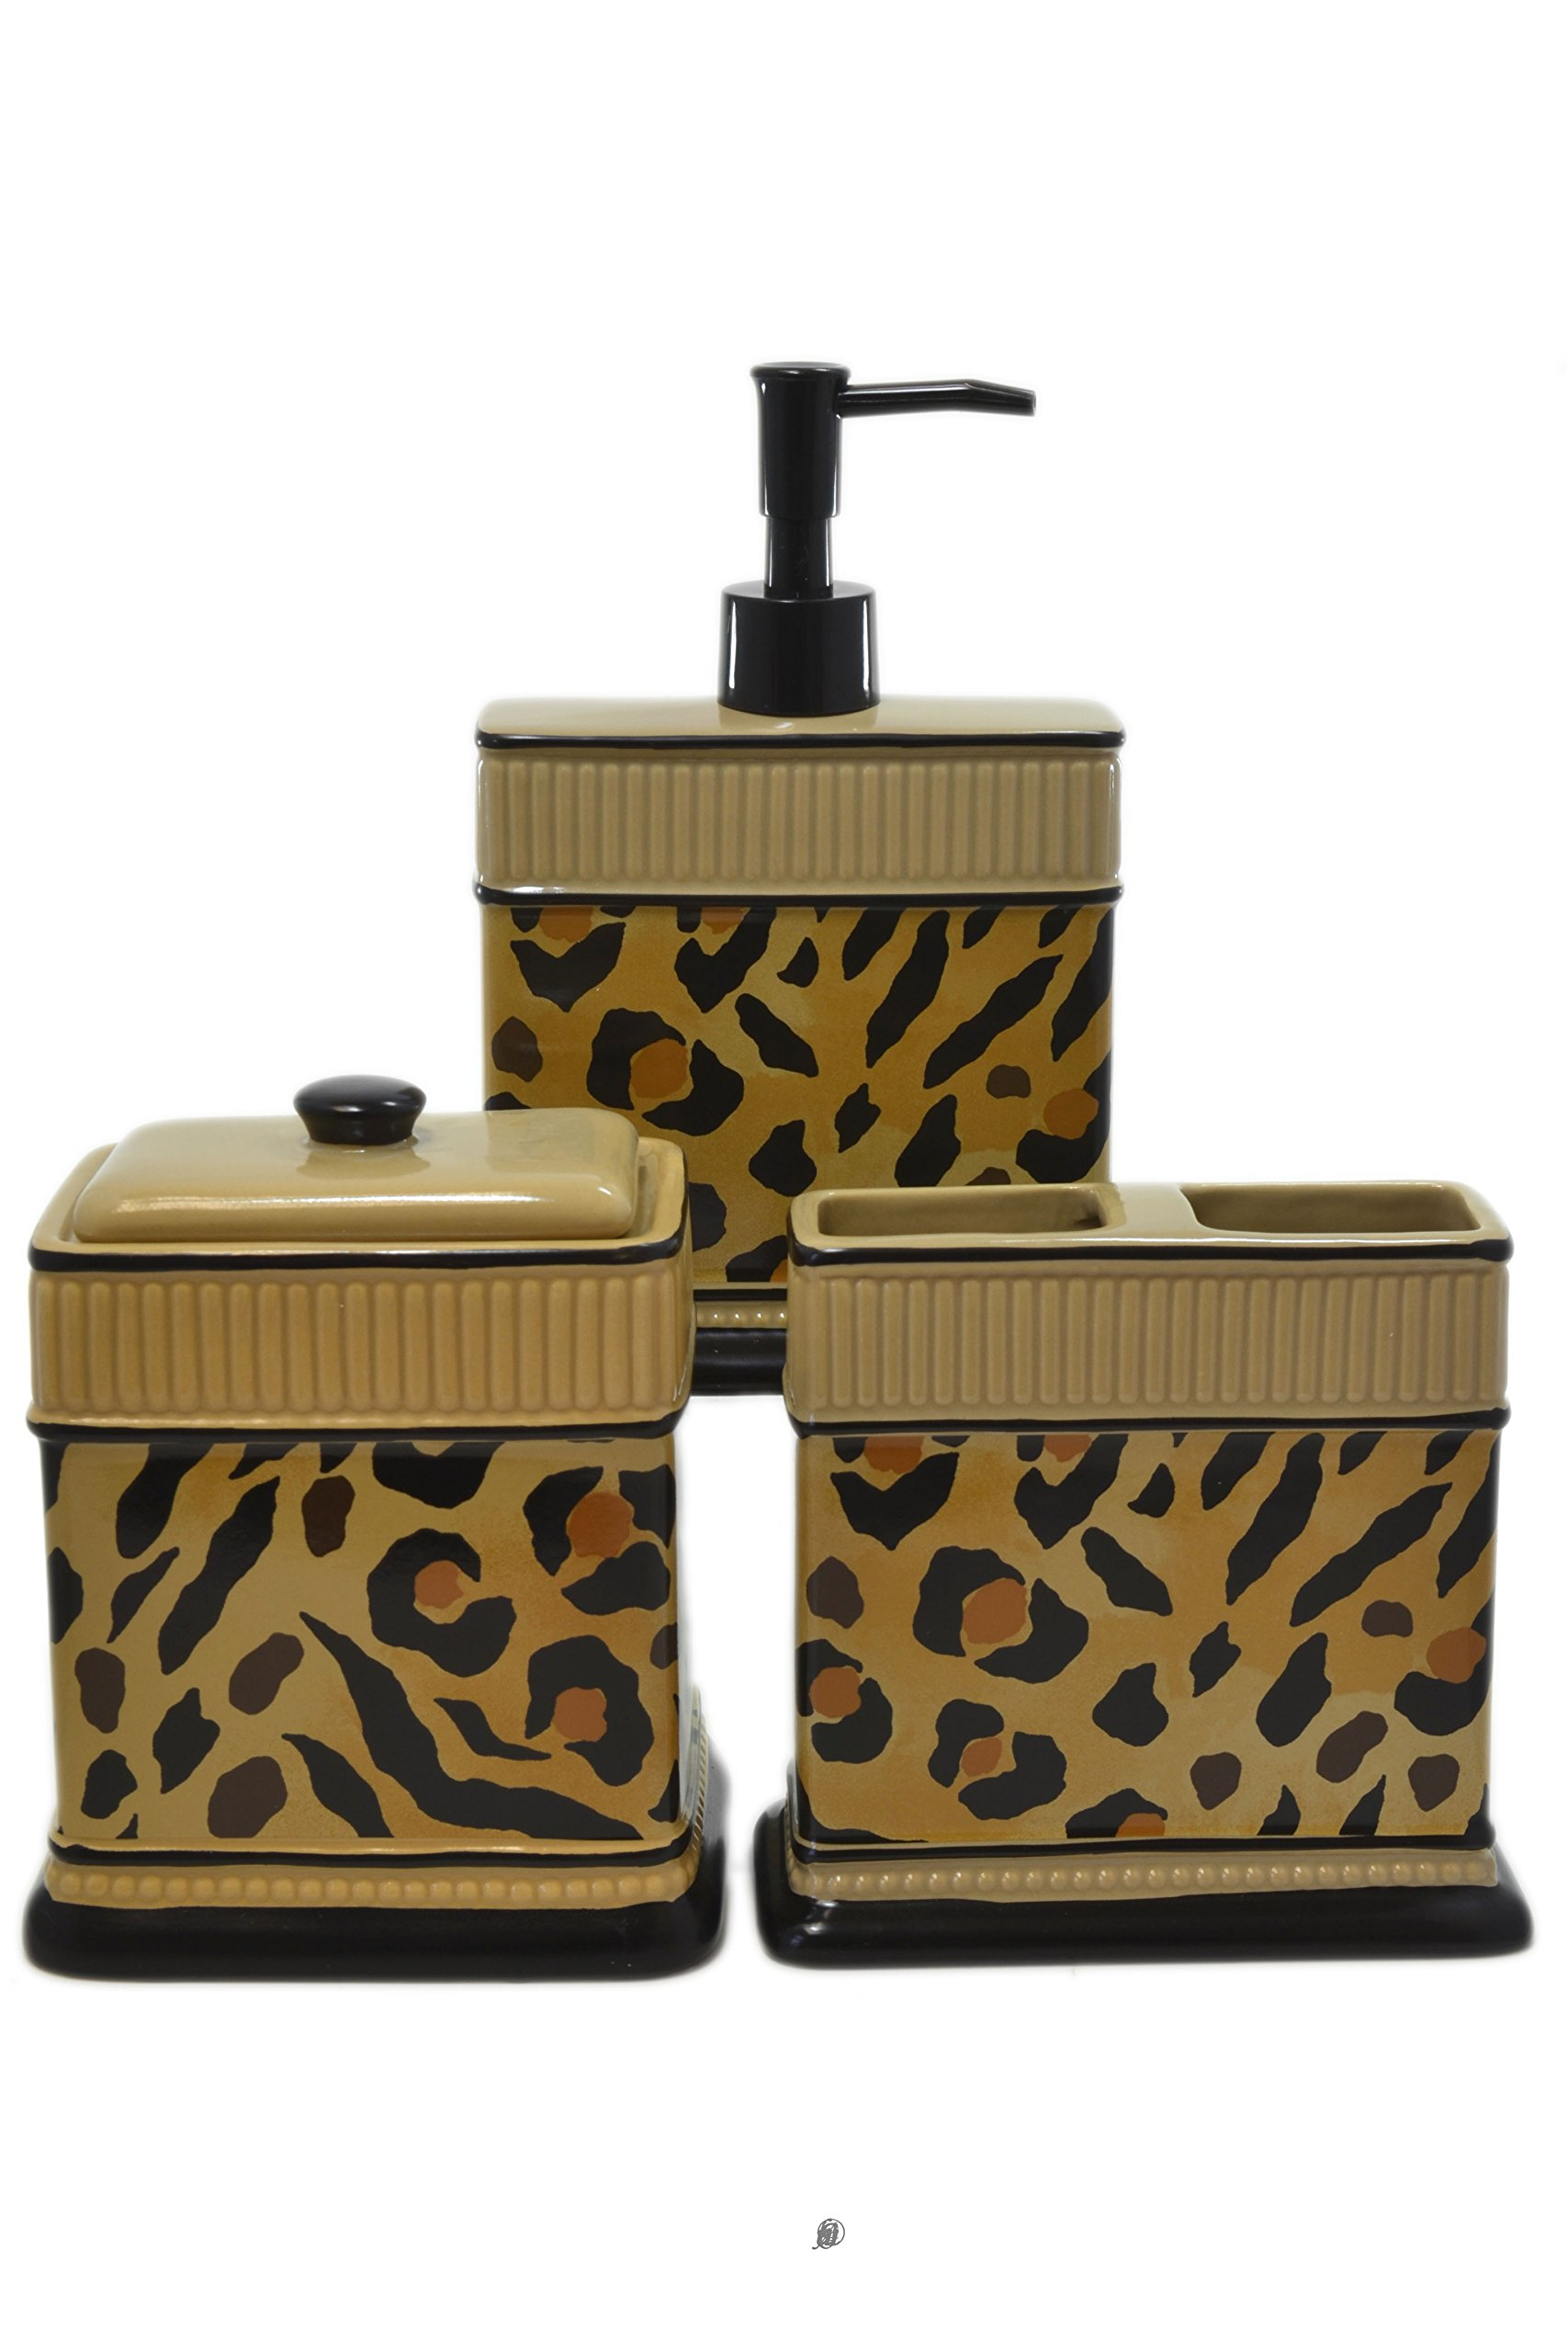 American Chateau Set 3 Piece Leopard Animal Print Ceramic Bathroom Accessories with Cotton Jar